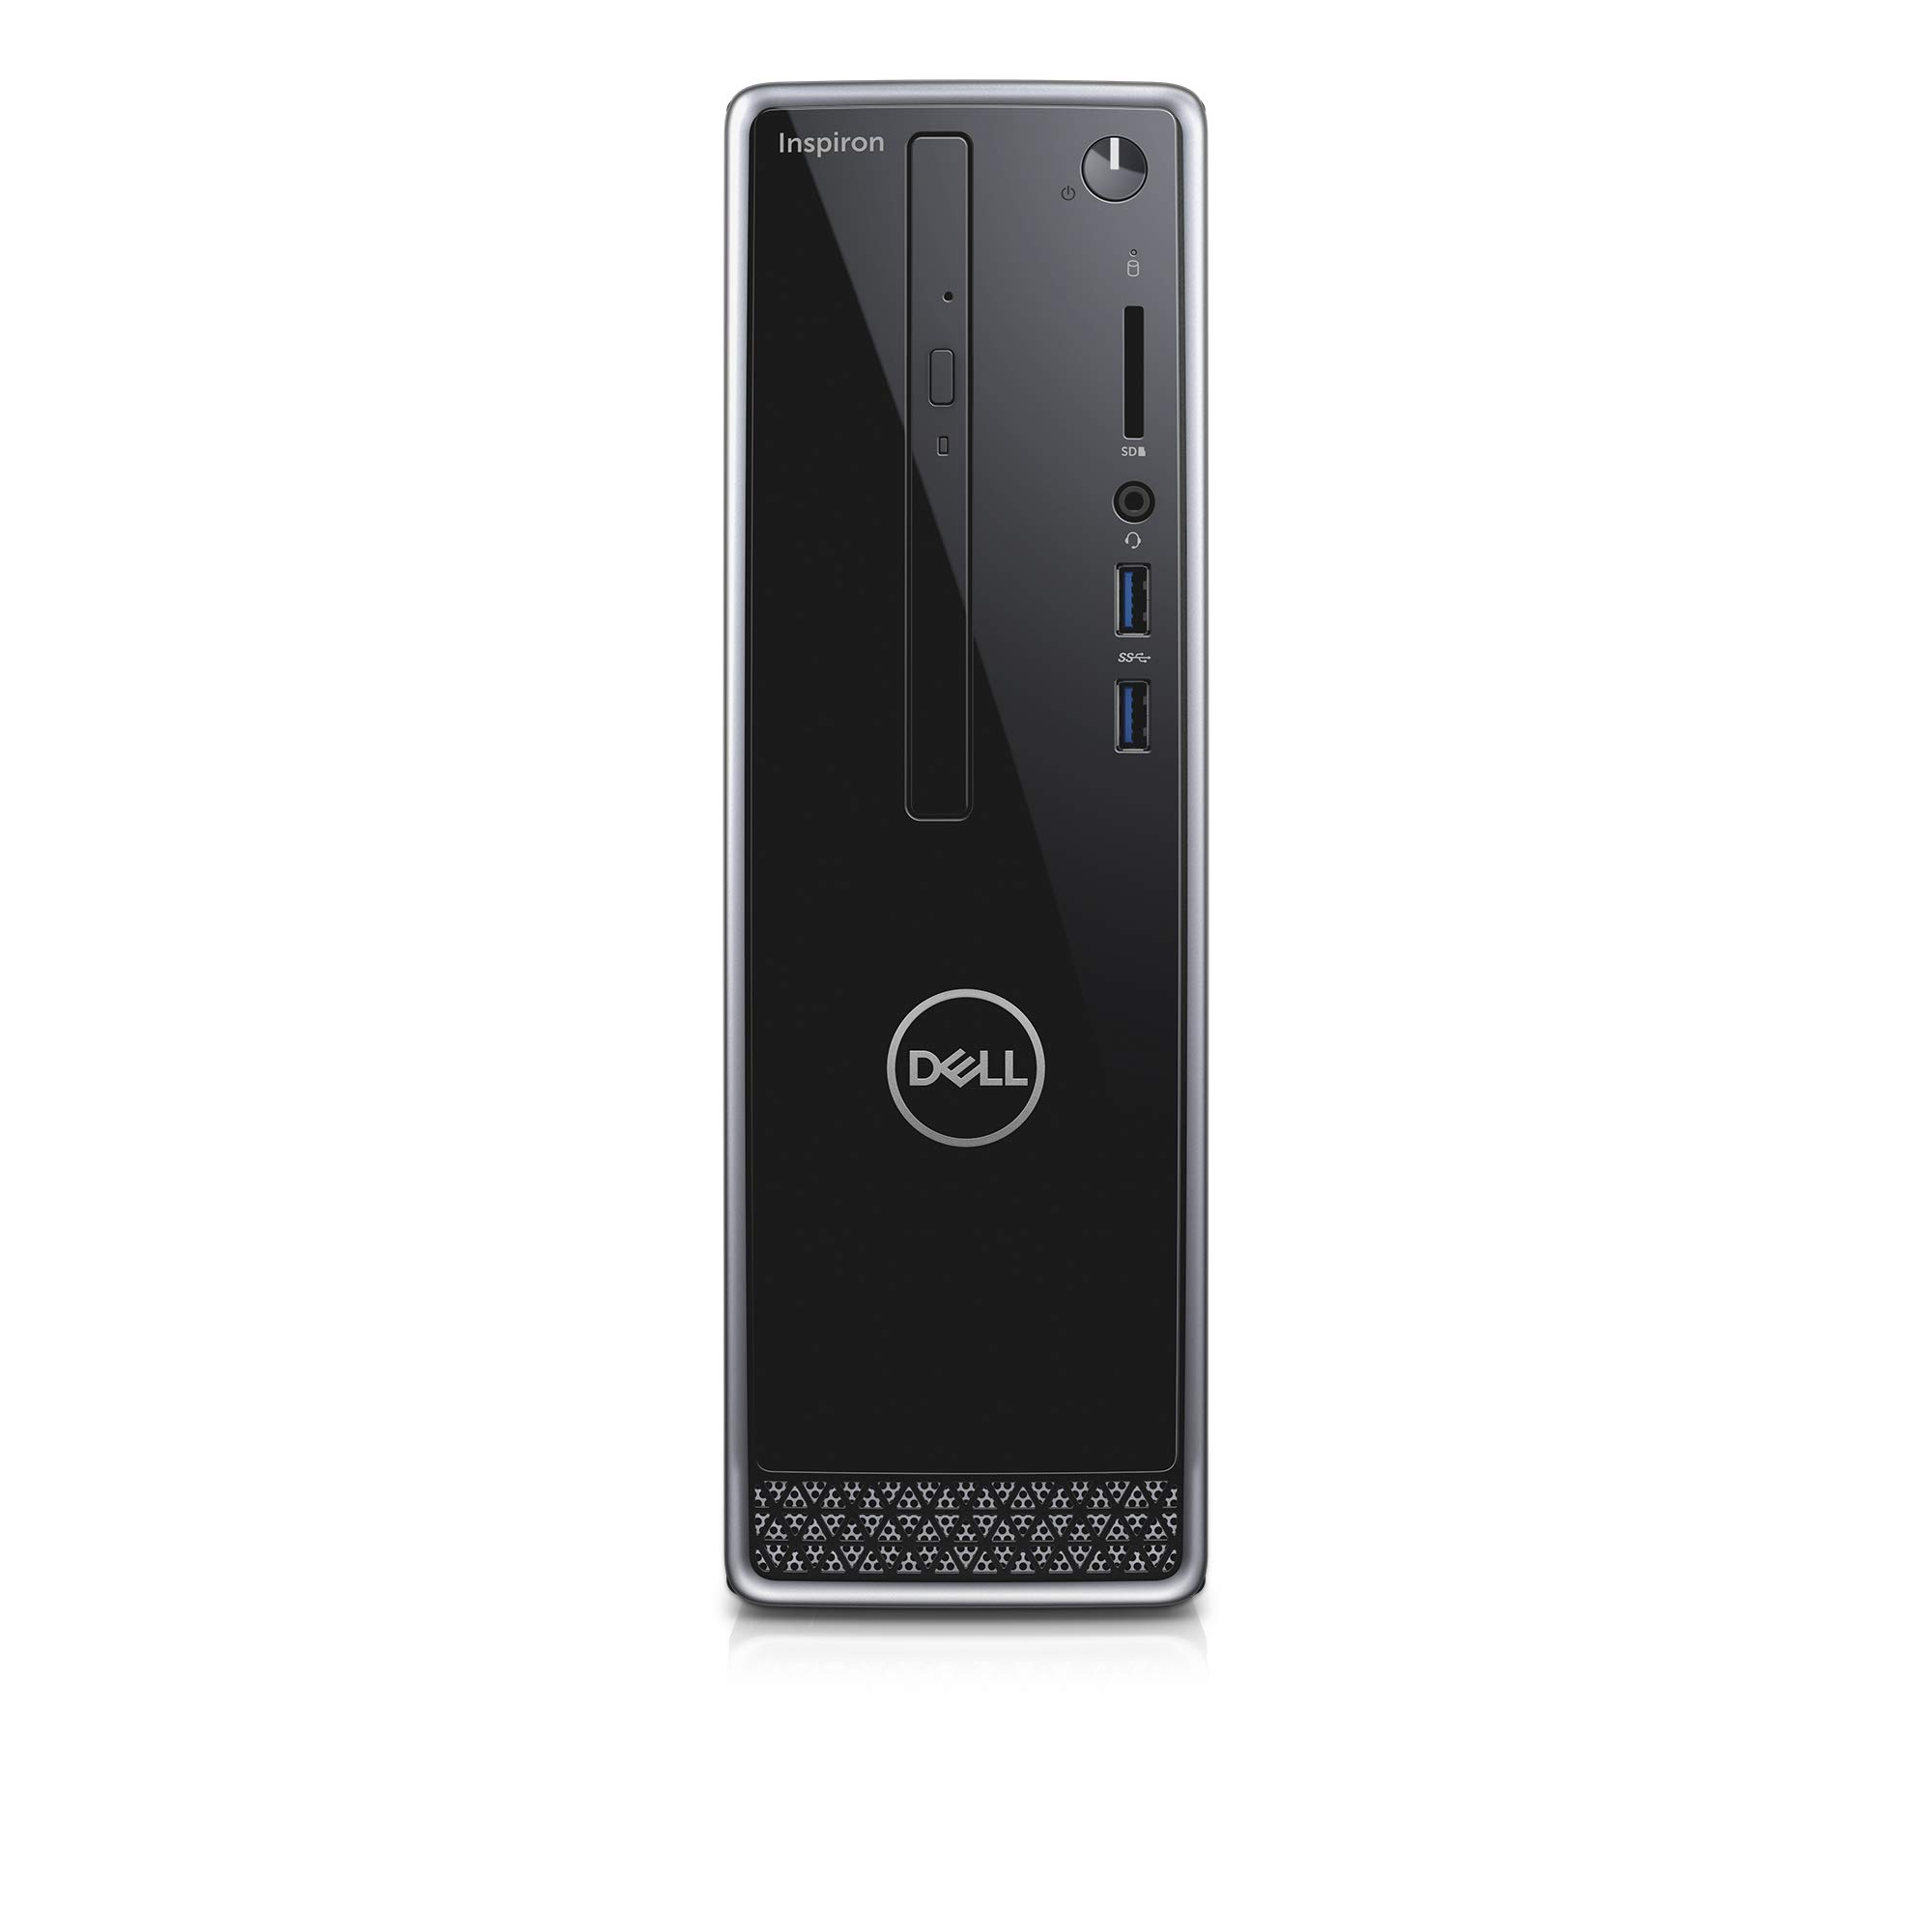 Dell Inspiron 3470|8Th Gen Intel Core i3-8100 Processor (6MB Cache, up to 3.6 Ghz)|8Gb (1x8GB) Single Channel, DDR4, 2400Mhz|1Tb 7200 RPM Hard Drive|DVD-RW Drive|Intel UHD Graphics 630 by Dell